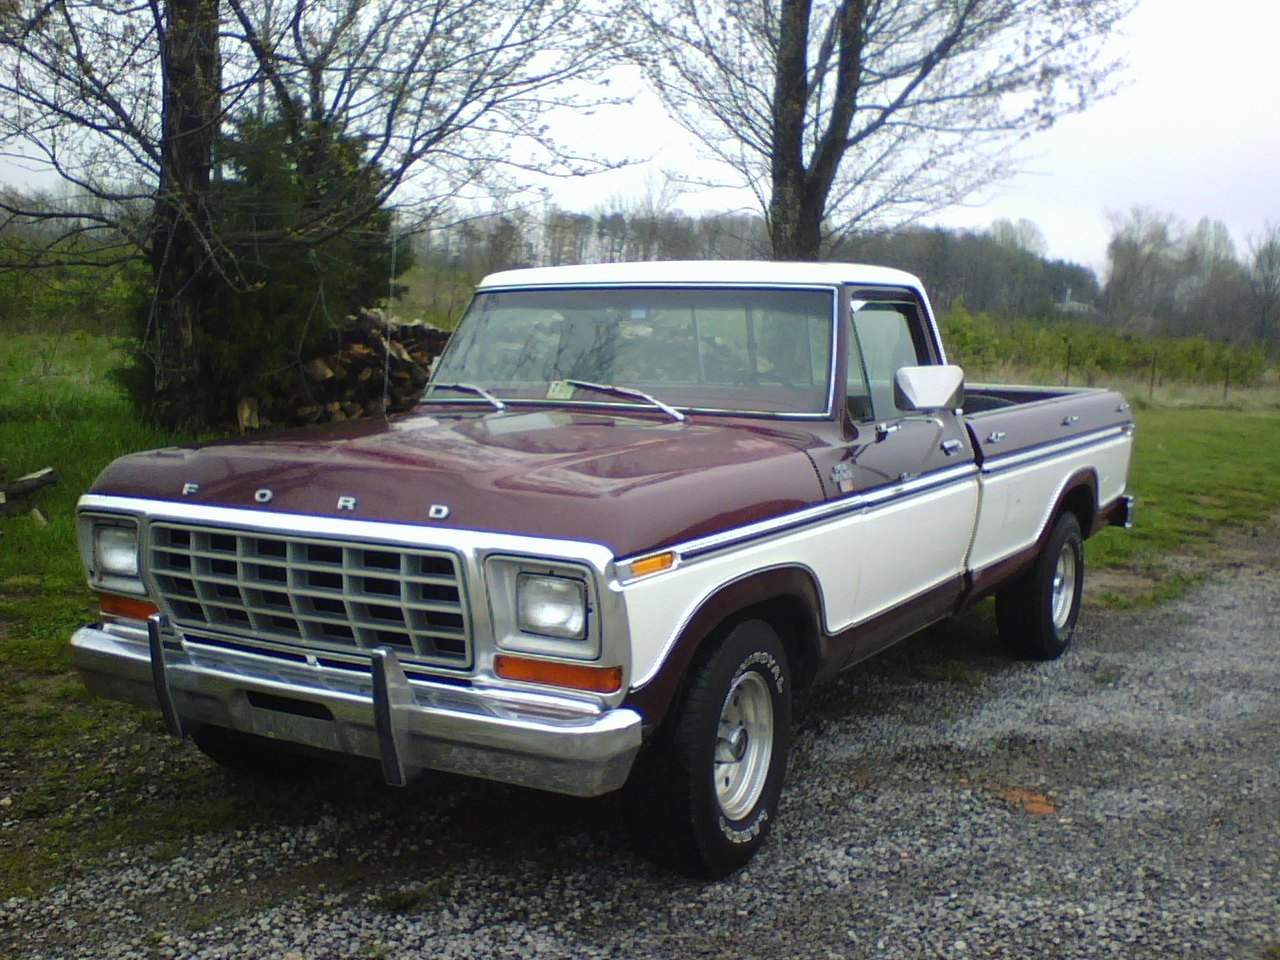 bradhoney 39 s 1979 ford f150 regular cab in chesapeake va. Black Bedroom Furniture Sets. Home Design Ideas